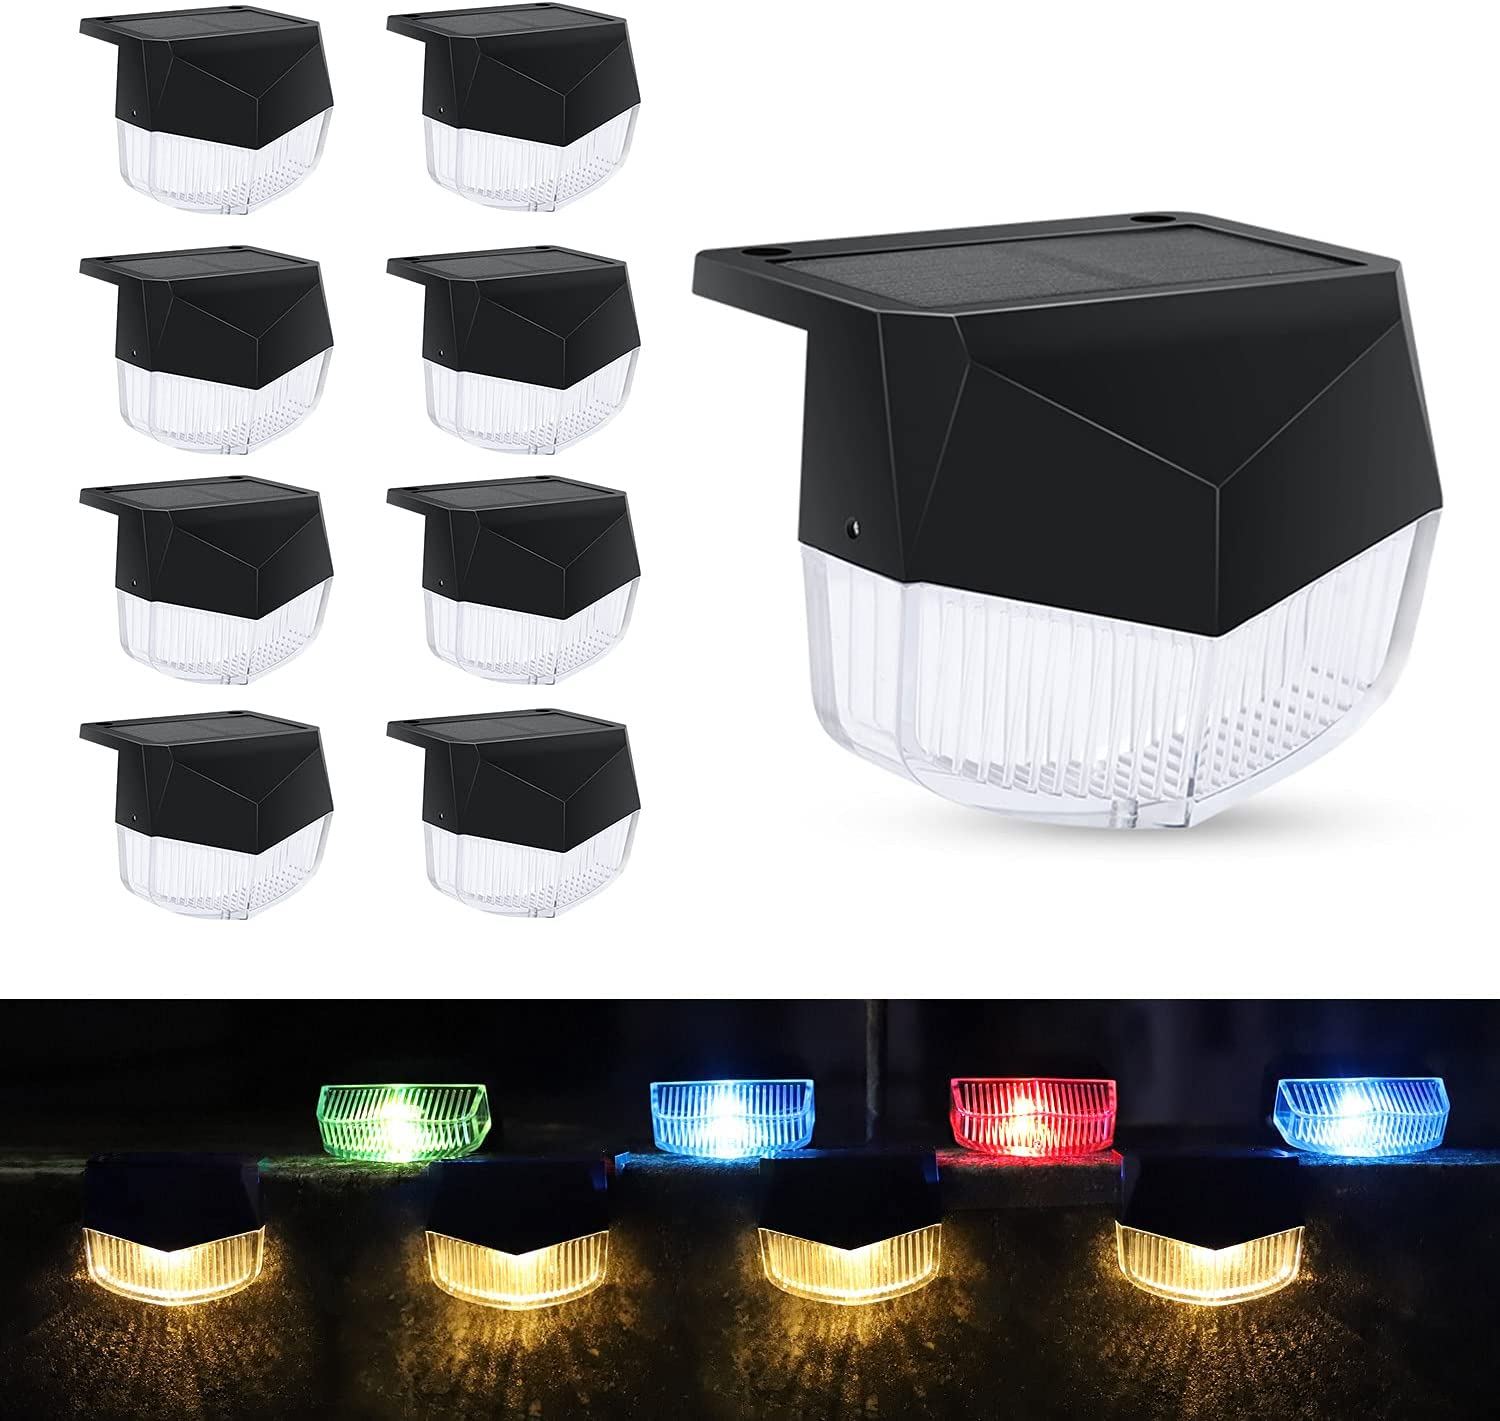 Solar Deck Lights Outdoor, 8 Pack Waterproof Solar Powered Charging Deck Lights Fence Lights for Post Led Step Stair Pool Backyard Garden Patio Porch para Deck Railings Color Decorative Lighting